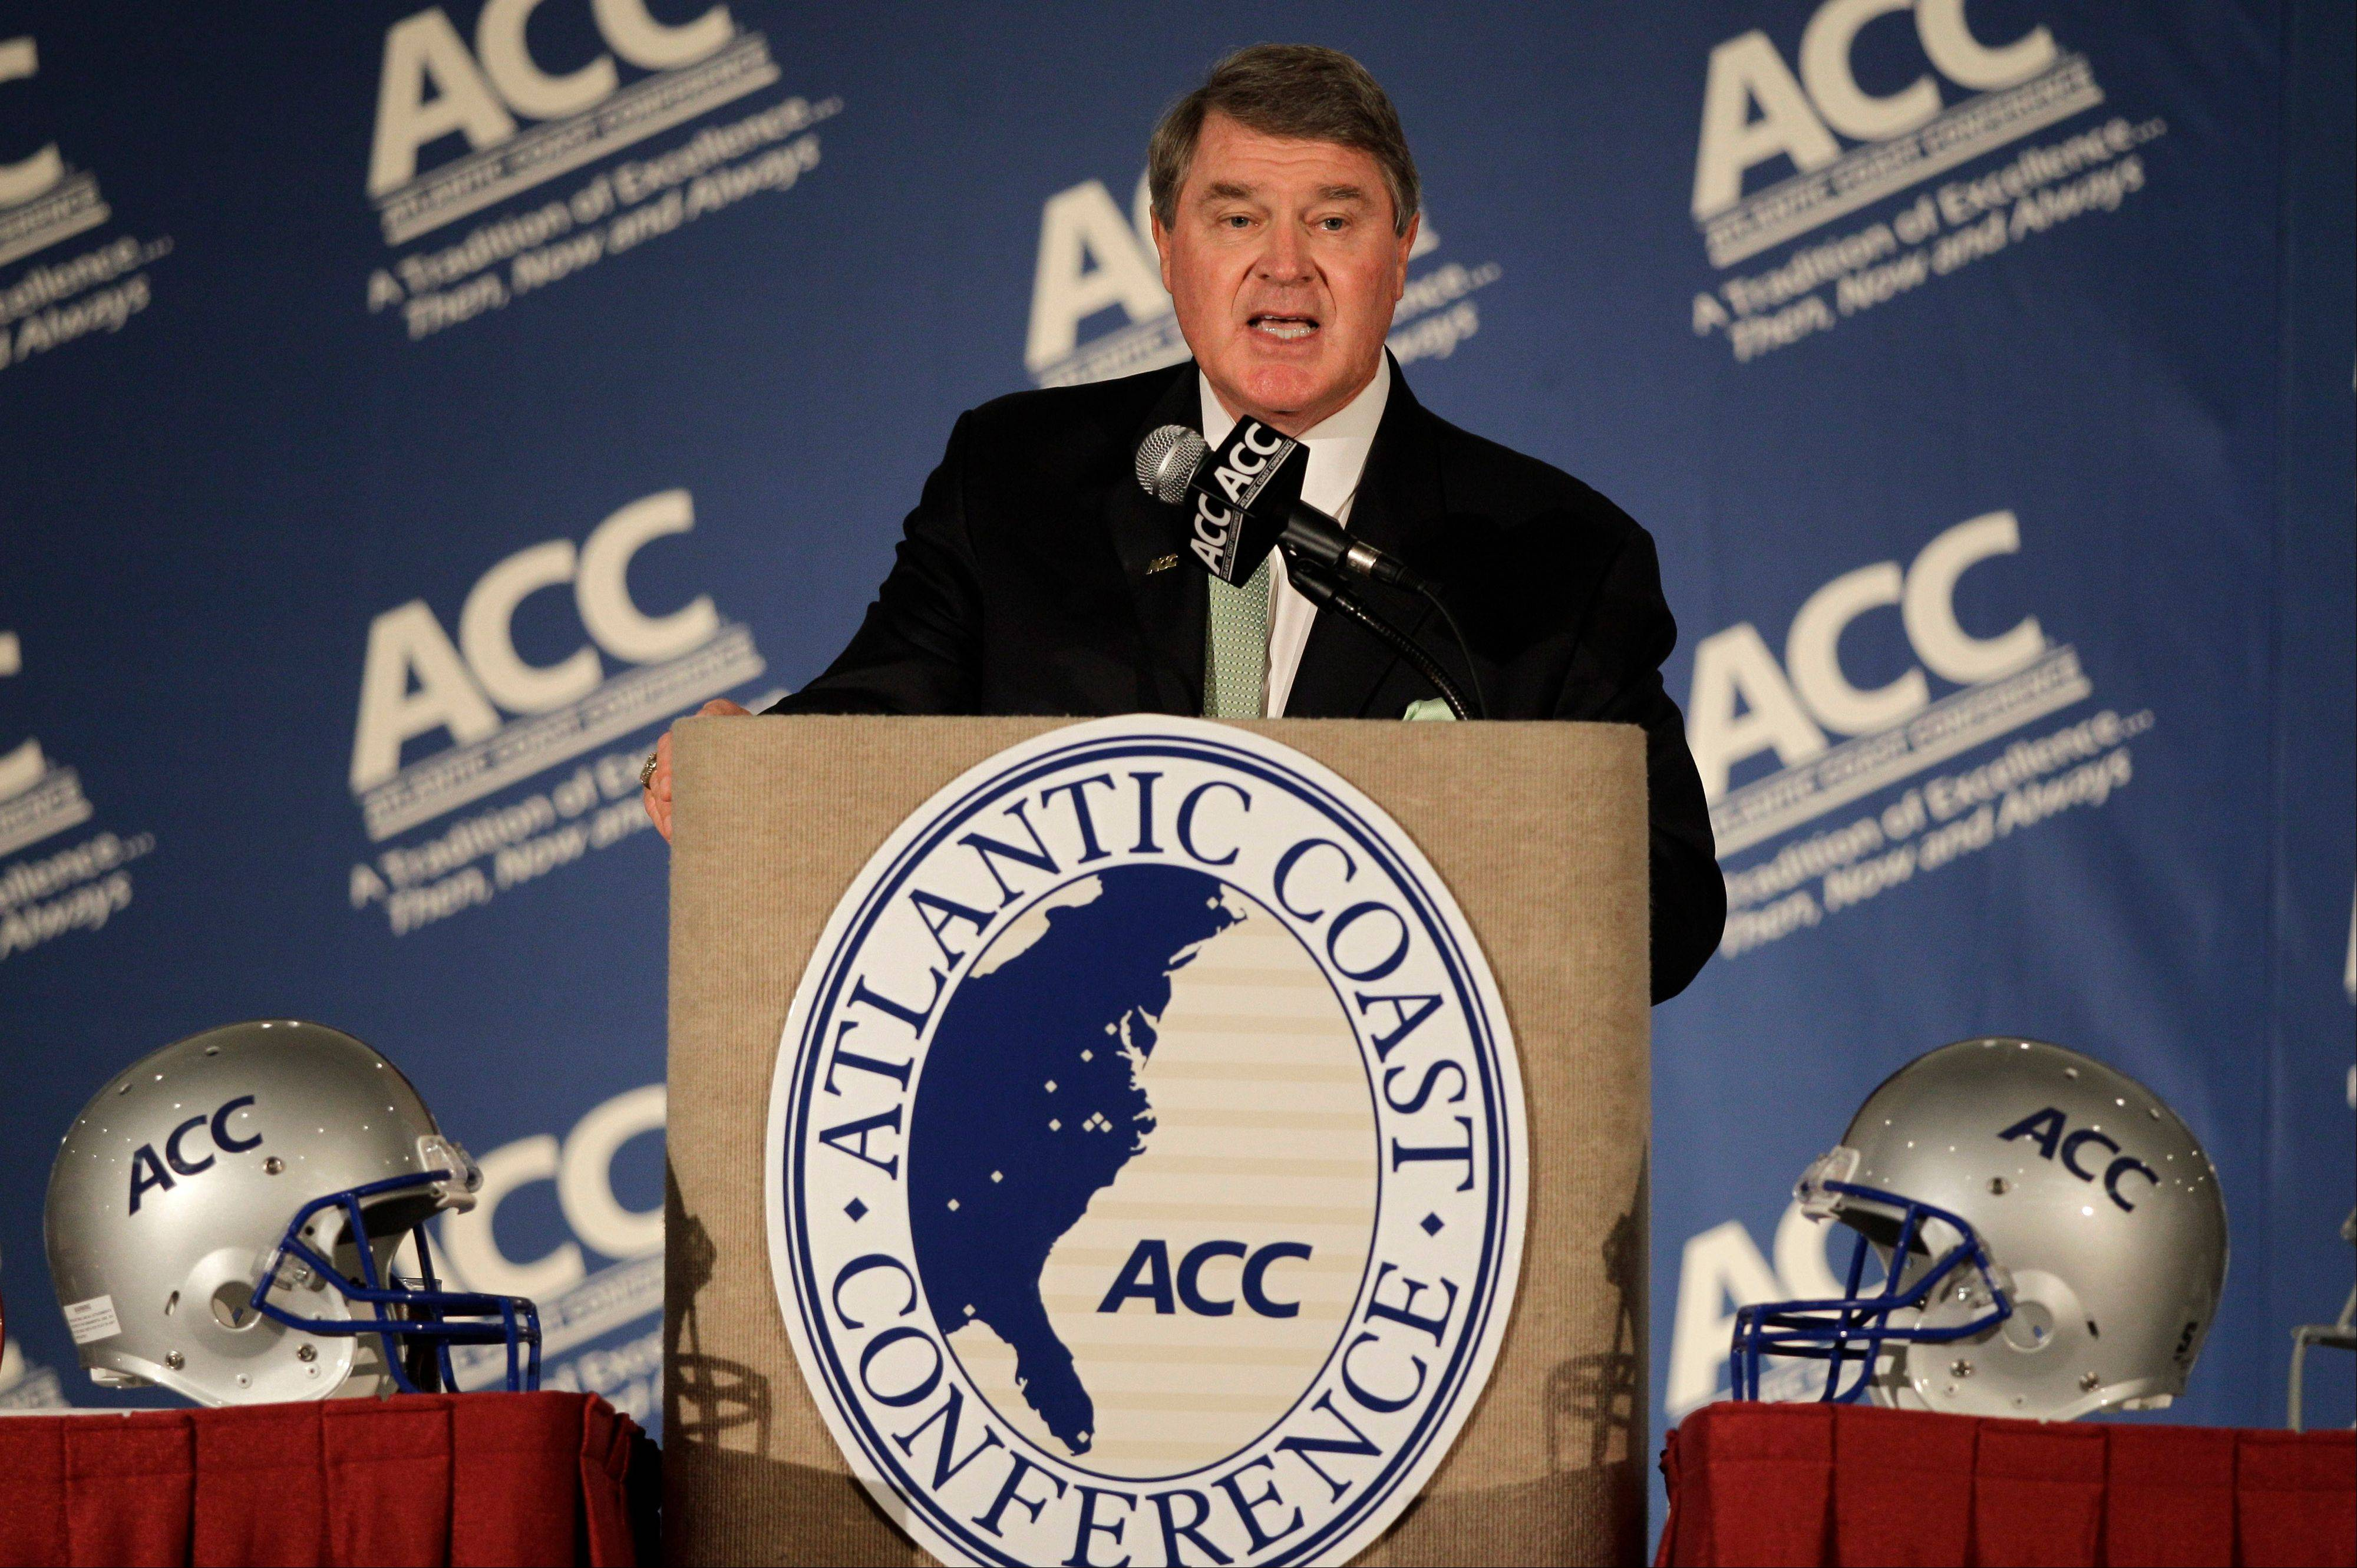 Atlantic Coast Conference commissioner John Swofford is expected to hold a news conference later today to discuss Notre Dame's agreement to leave the Big East for the ACC in all sports but football. The ACC said Wednesday the school will play five football games annually against the league's programs, but will be a full member in all other sports.